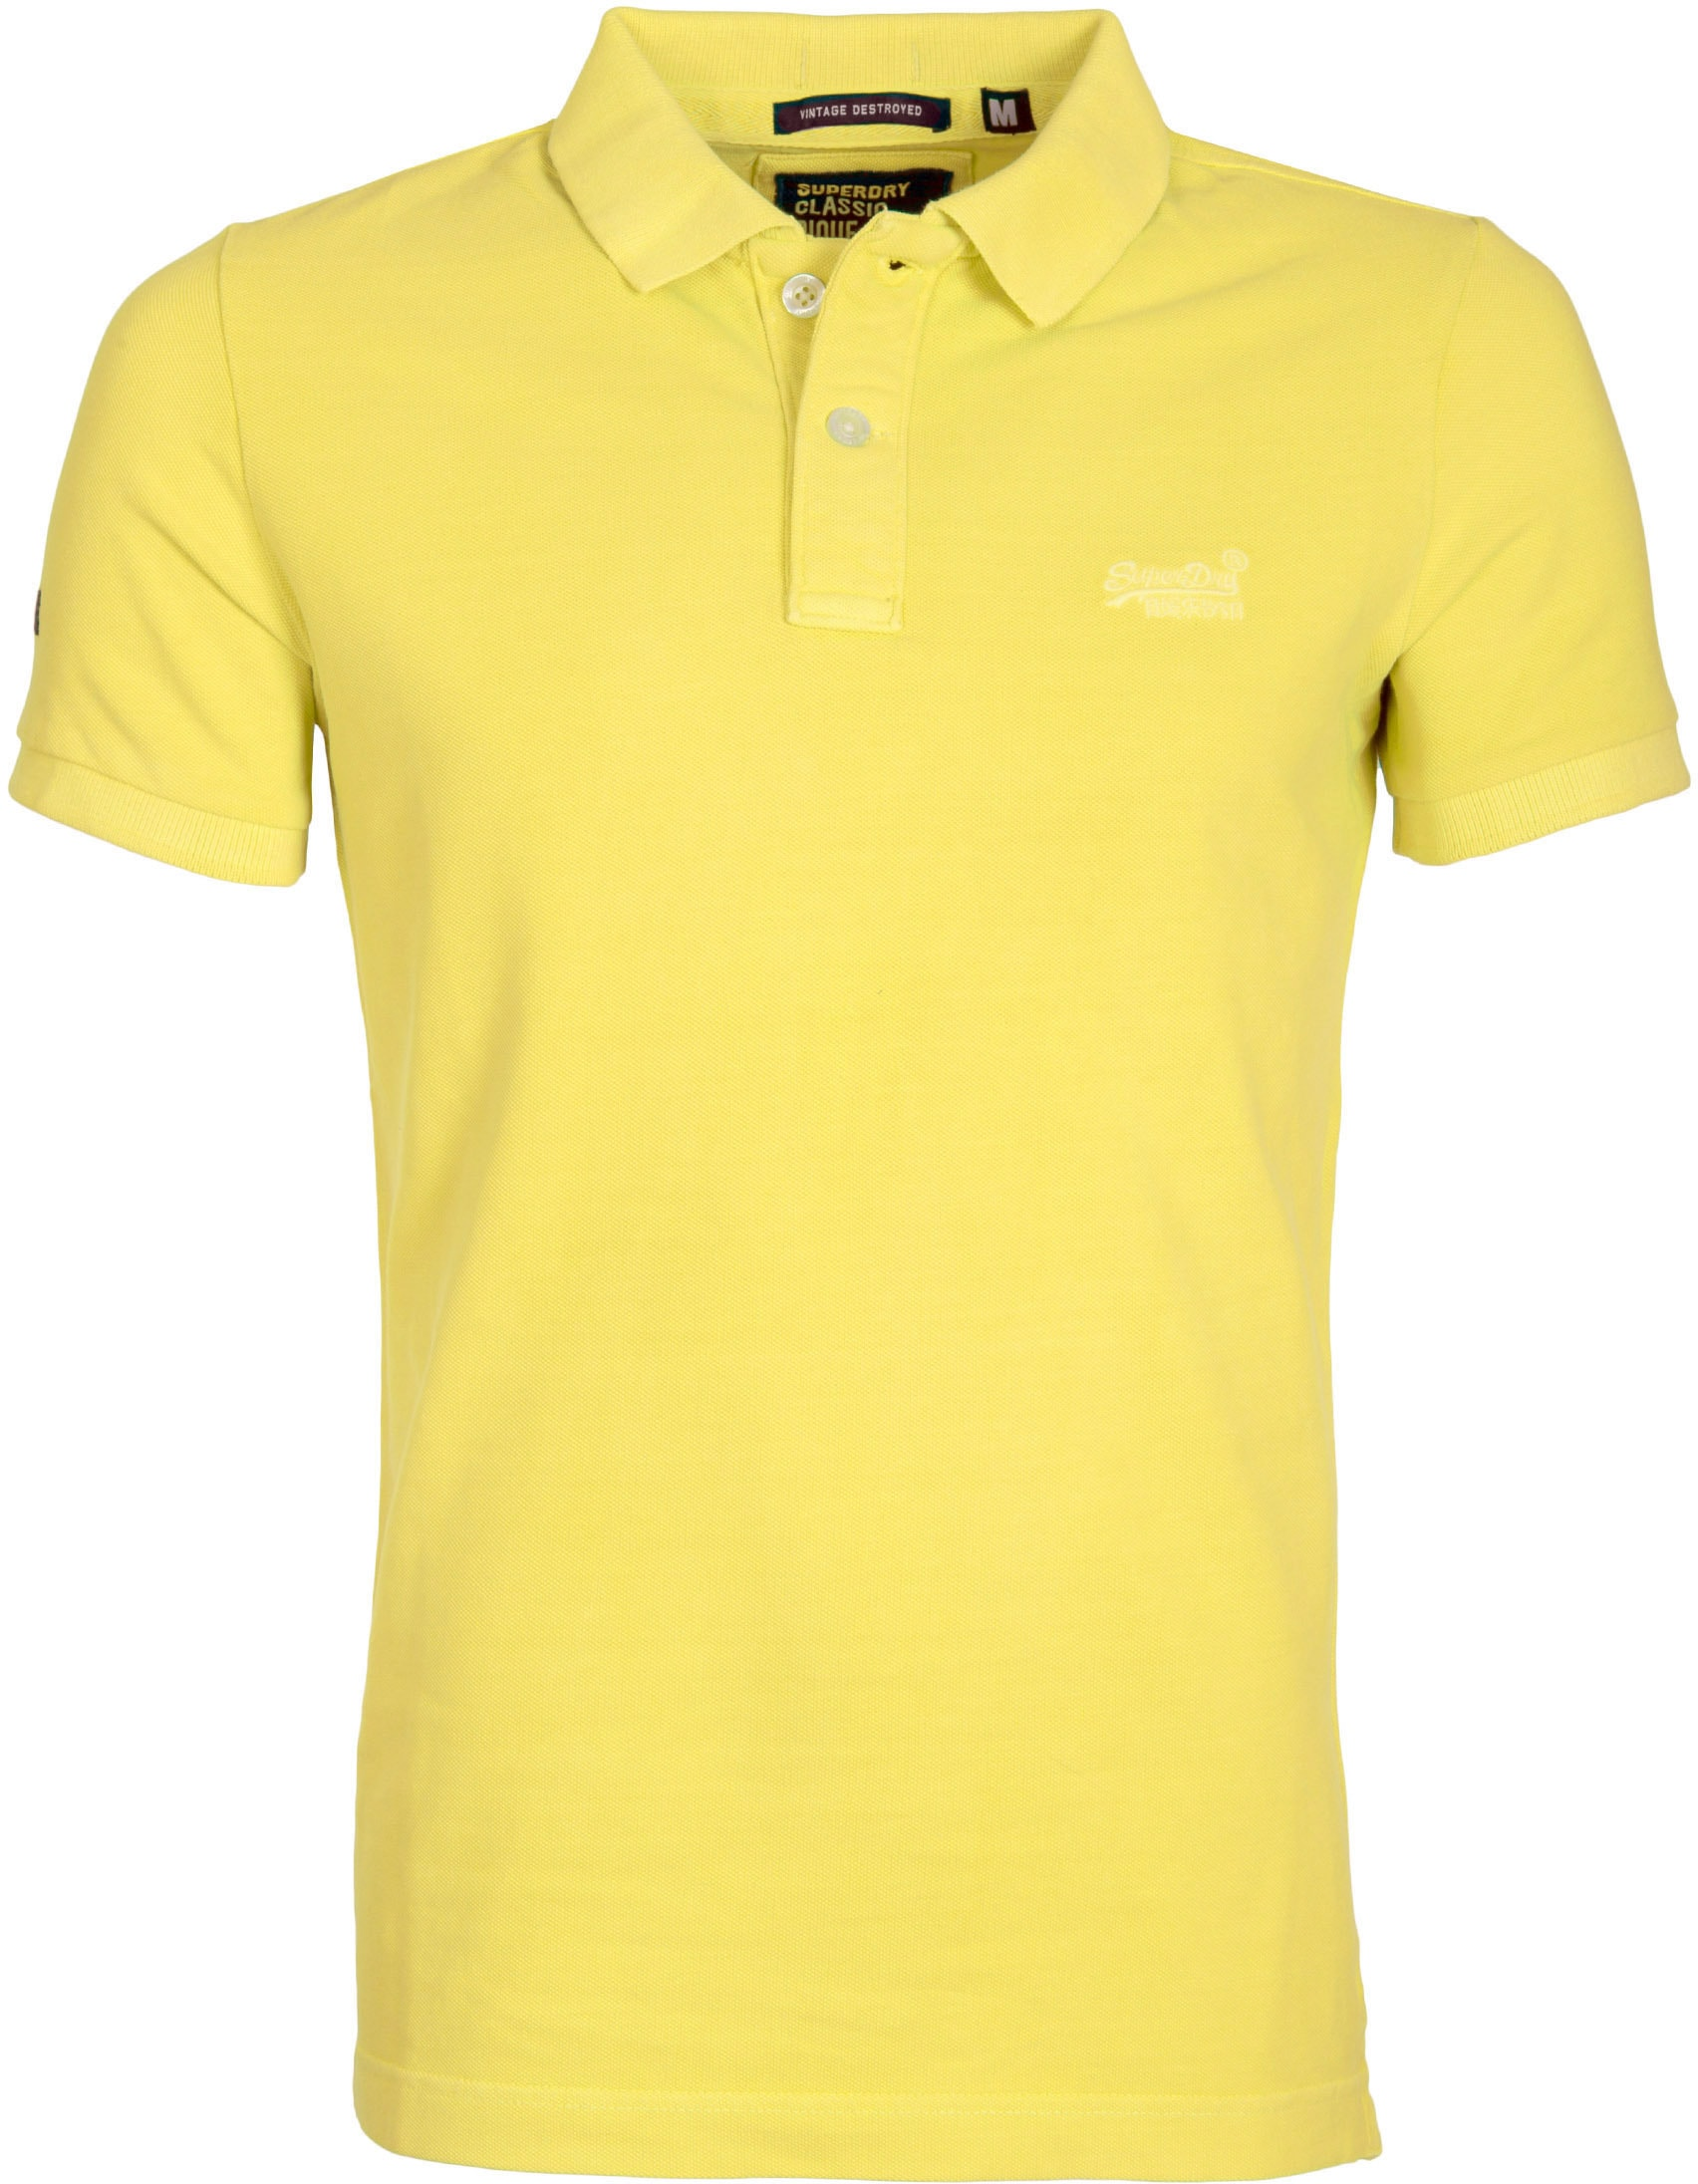 Superdry Vintage Destroyed Polo Yellow foto 0